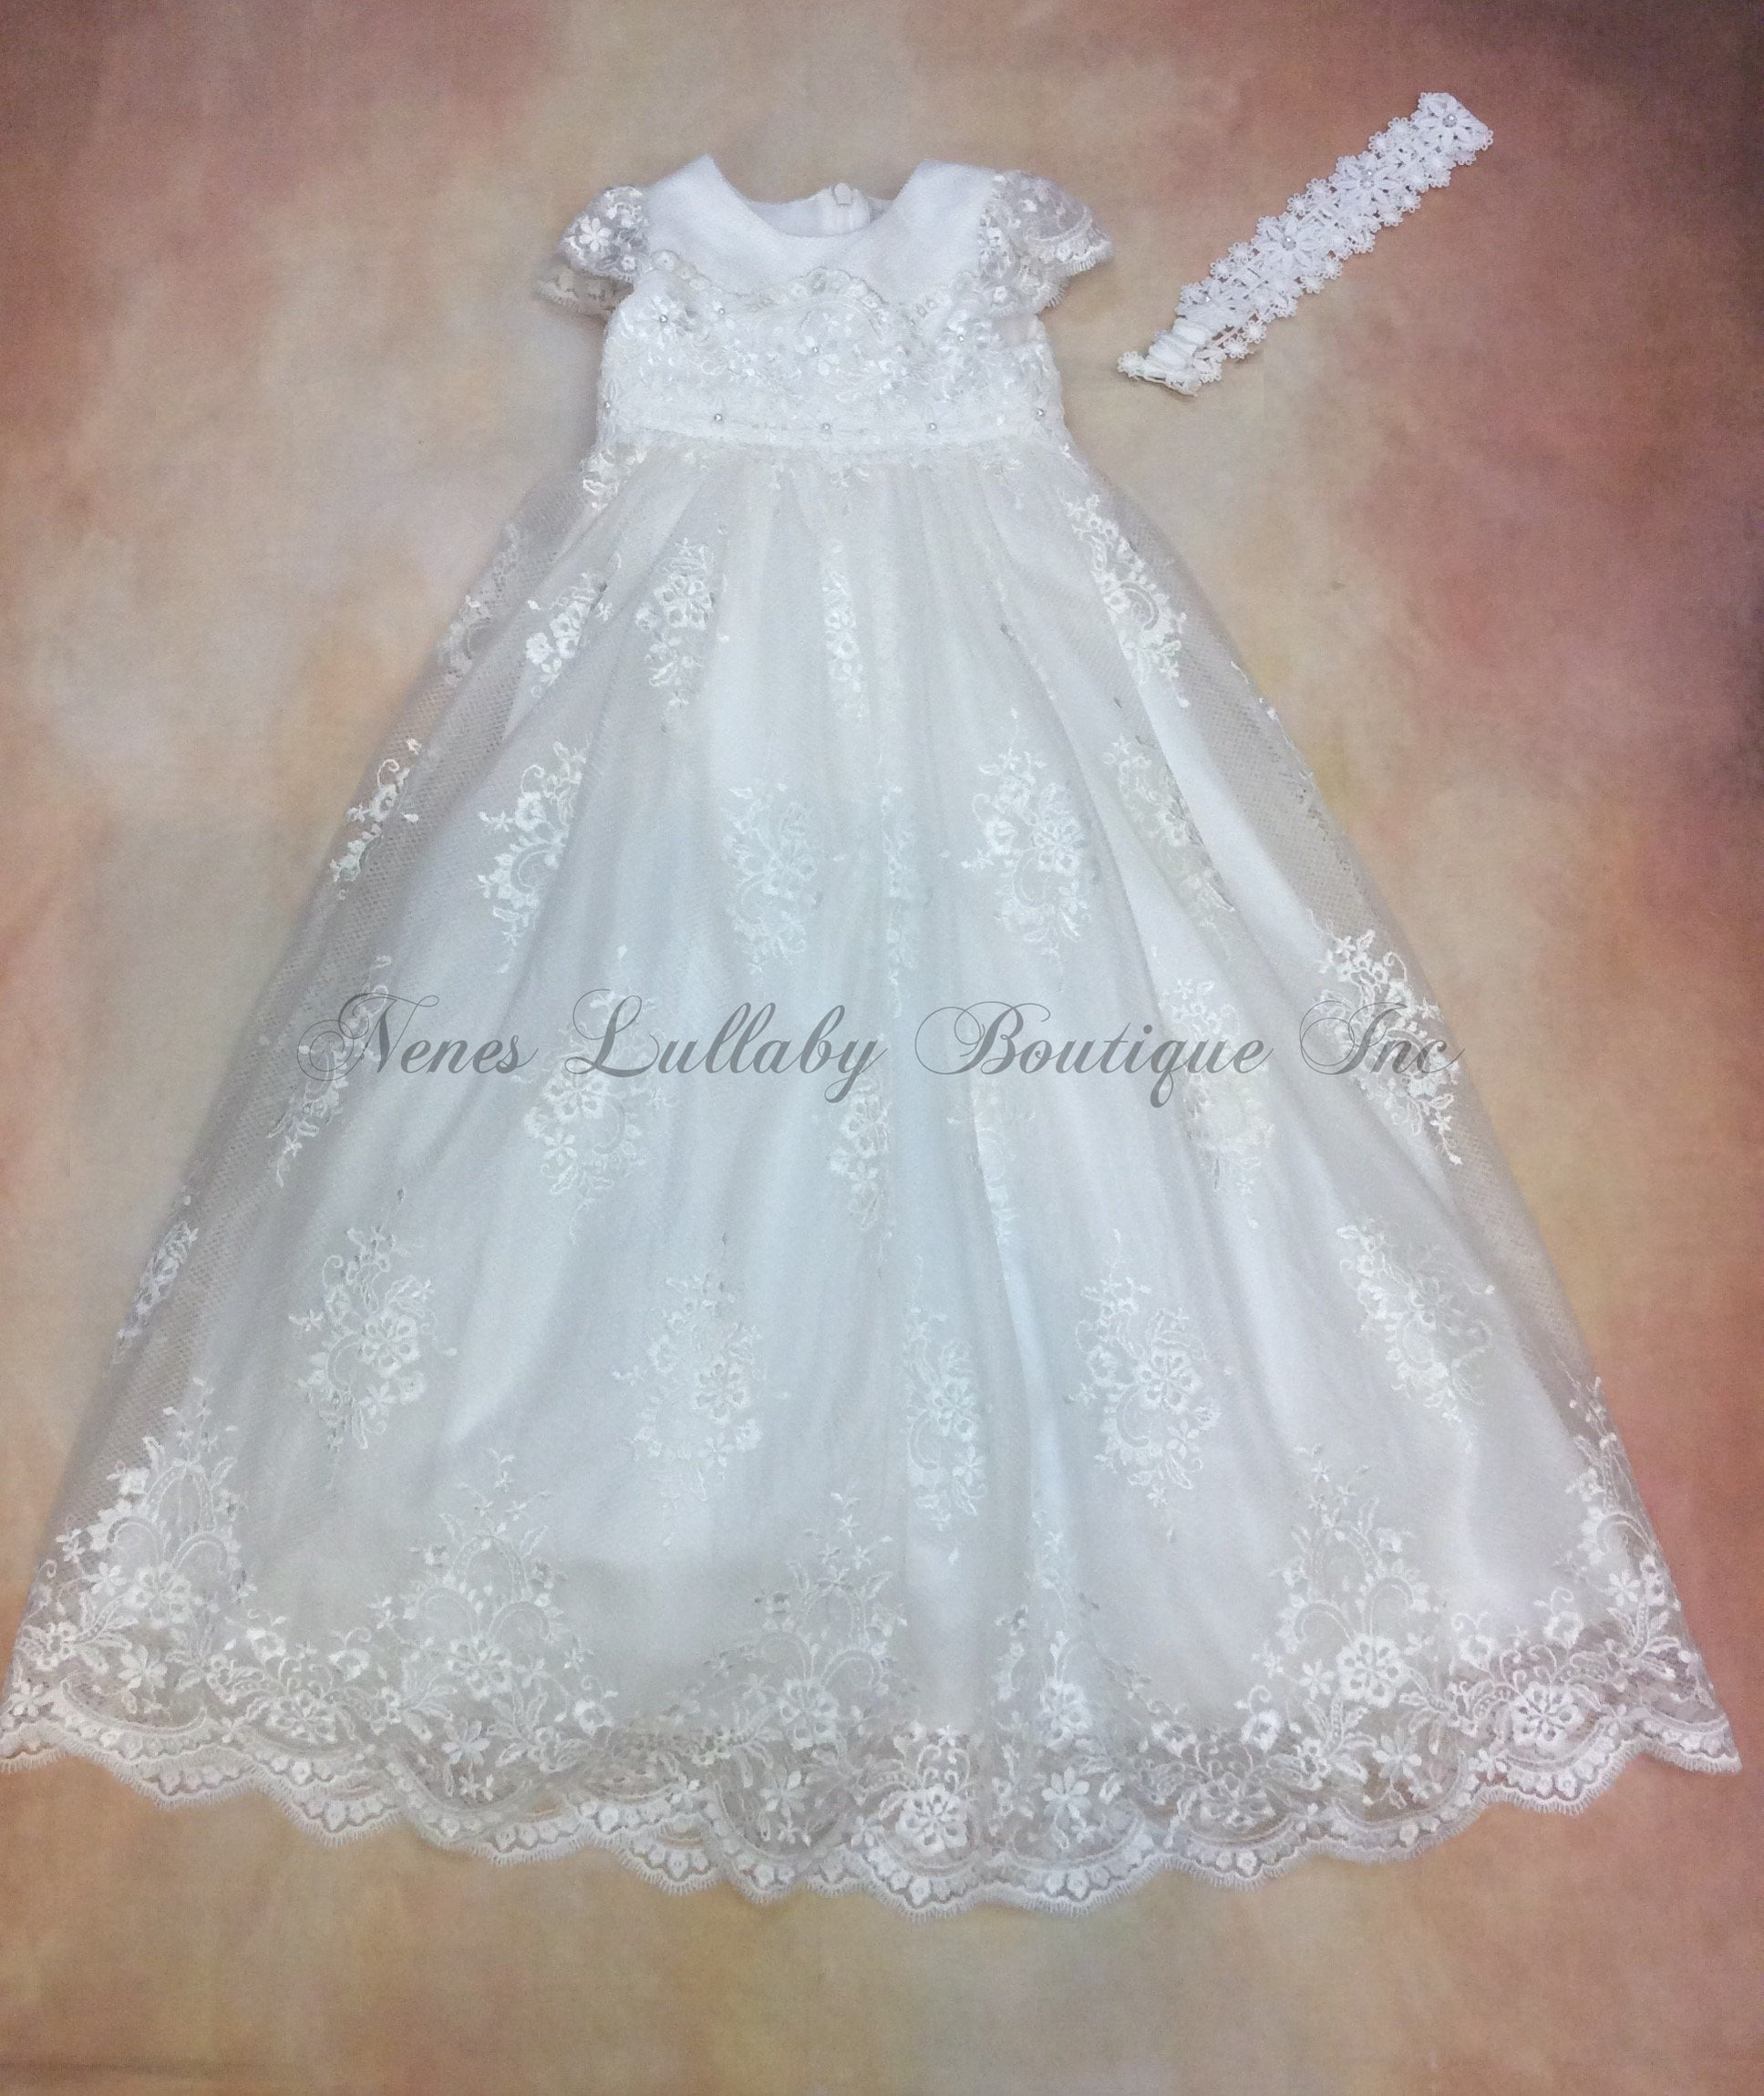 PDY2096024 All over lace Girls Christening Gown with matching headband - Nenes Lullaby Boutique Inc